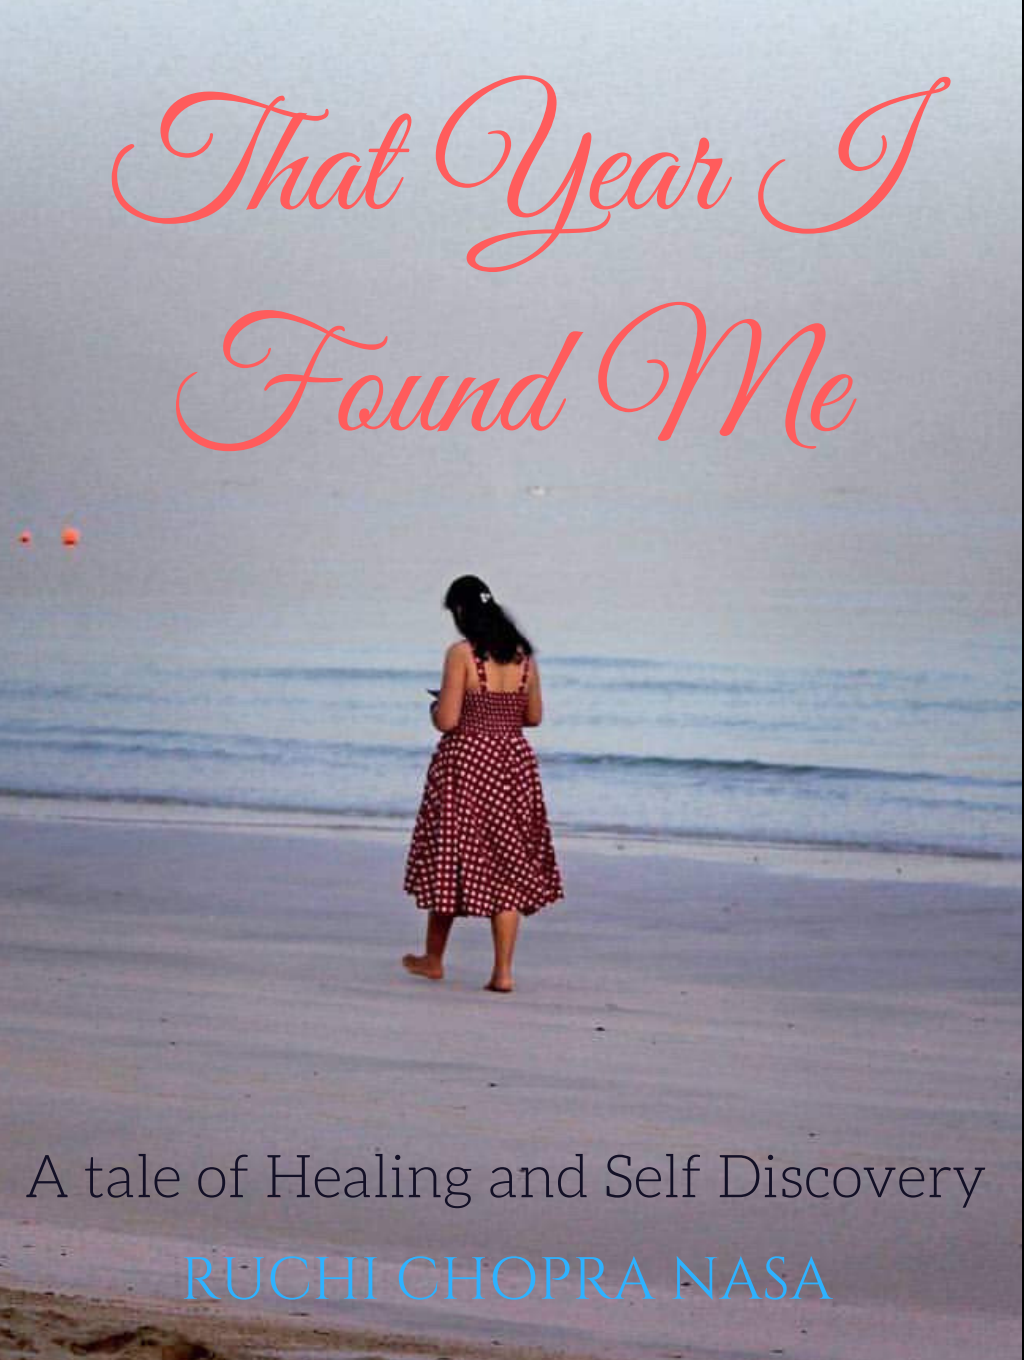 Book review – That year I found me by Dr. Ruchi Chopra Nasa